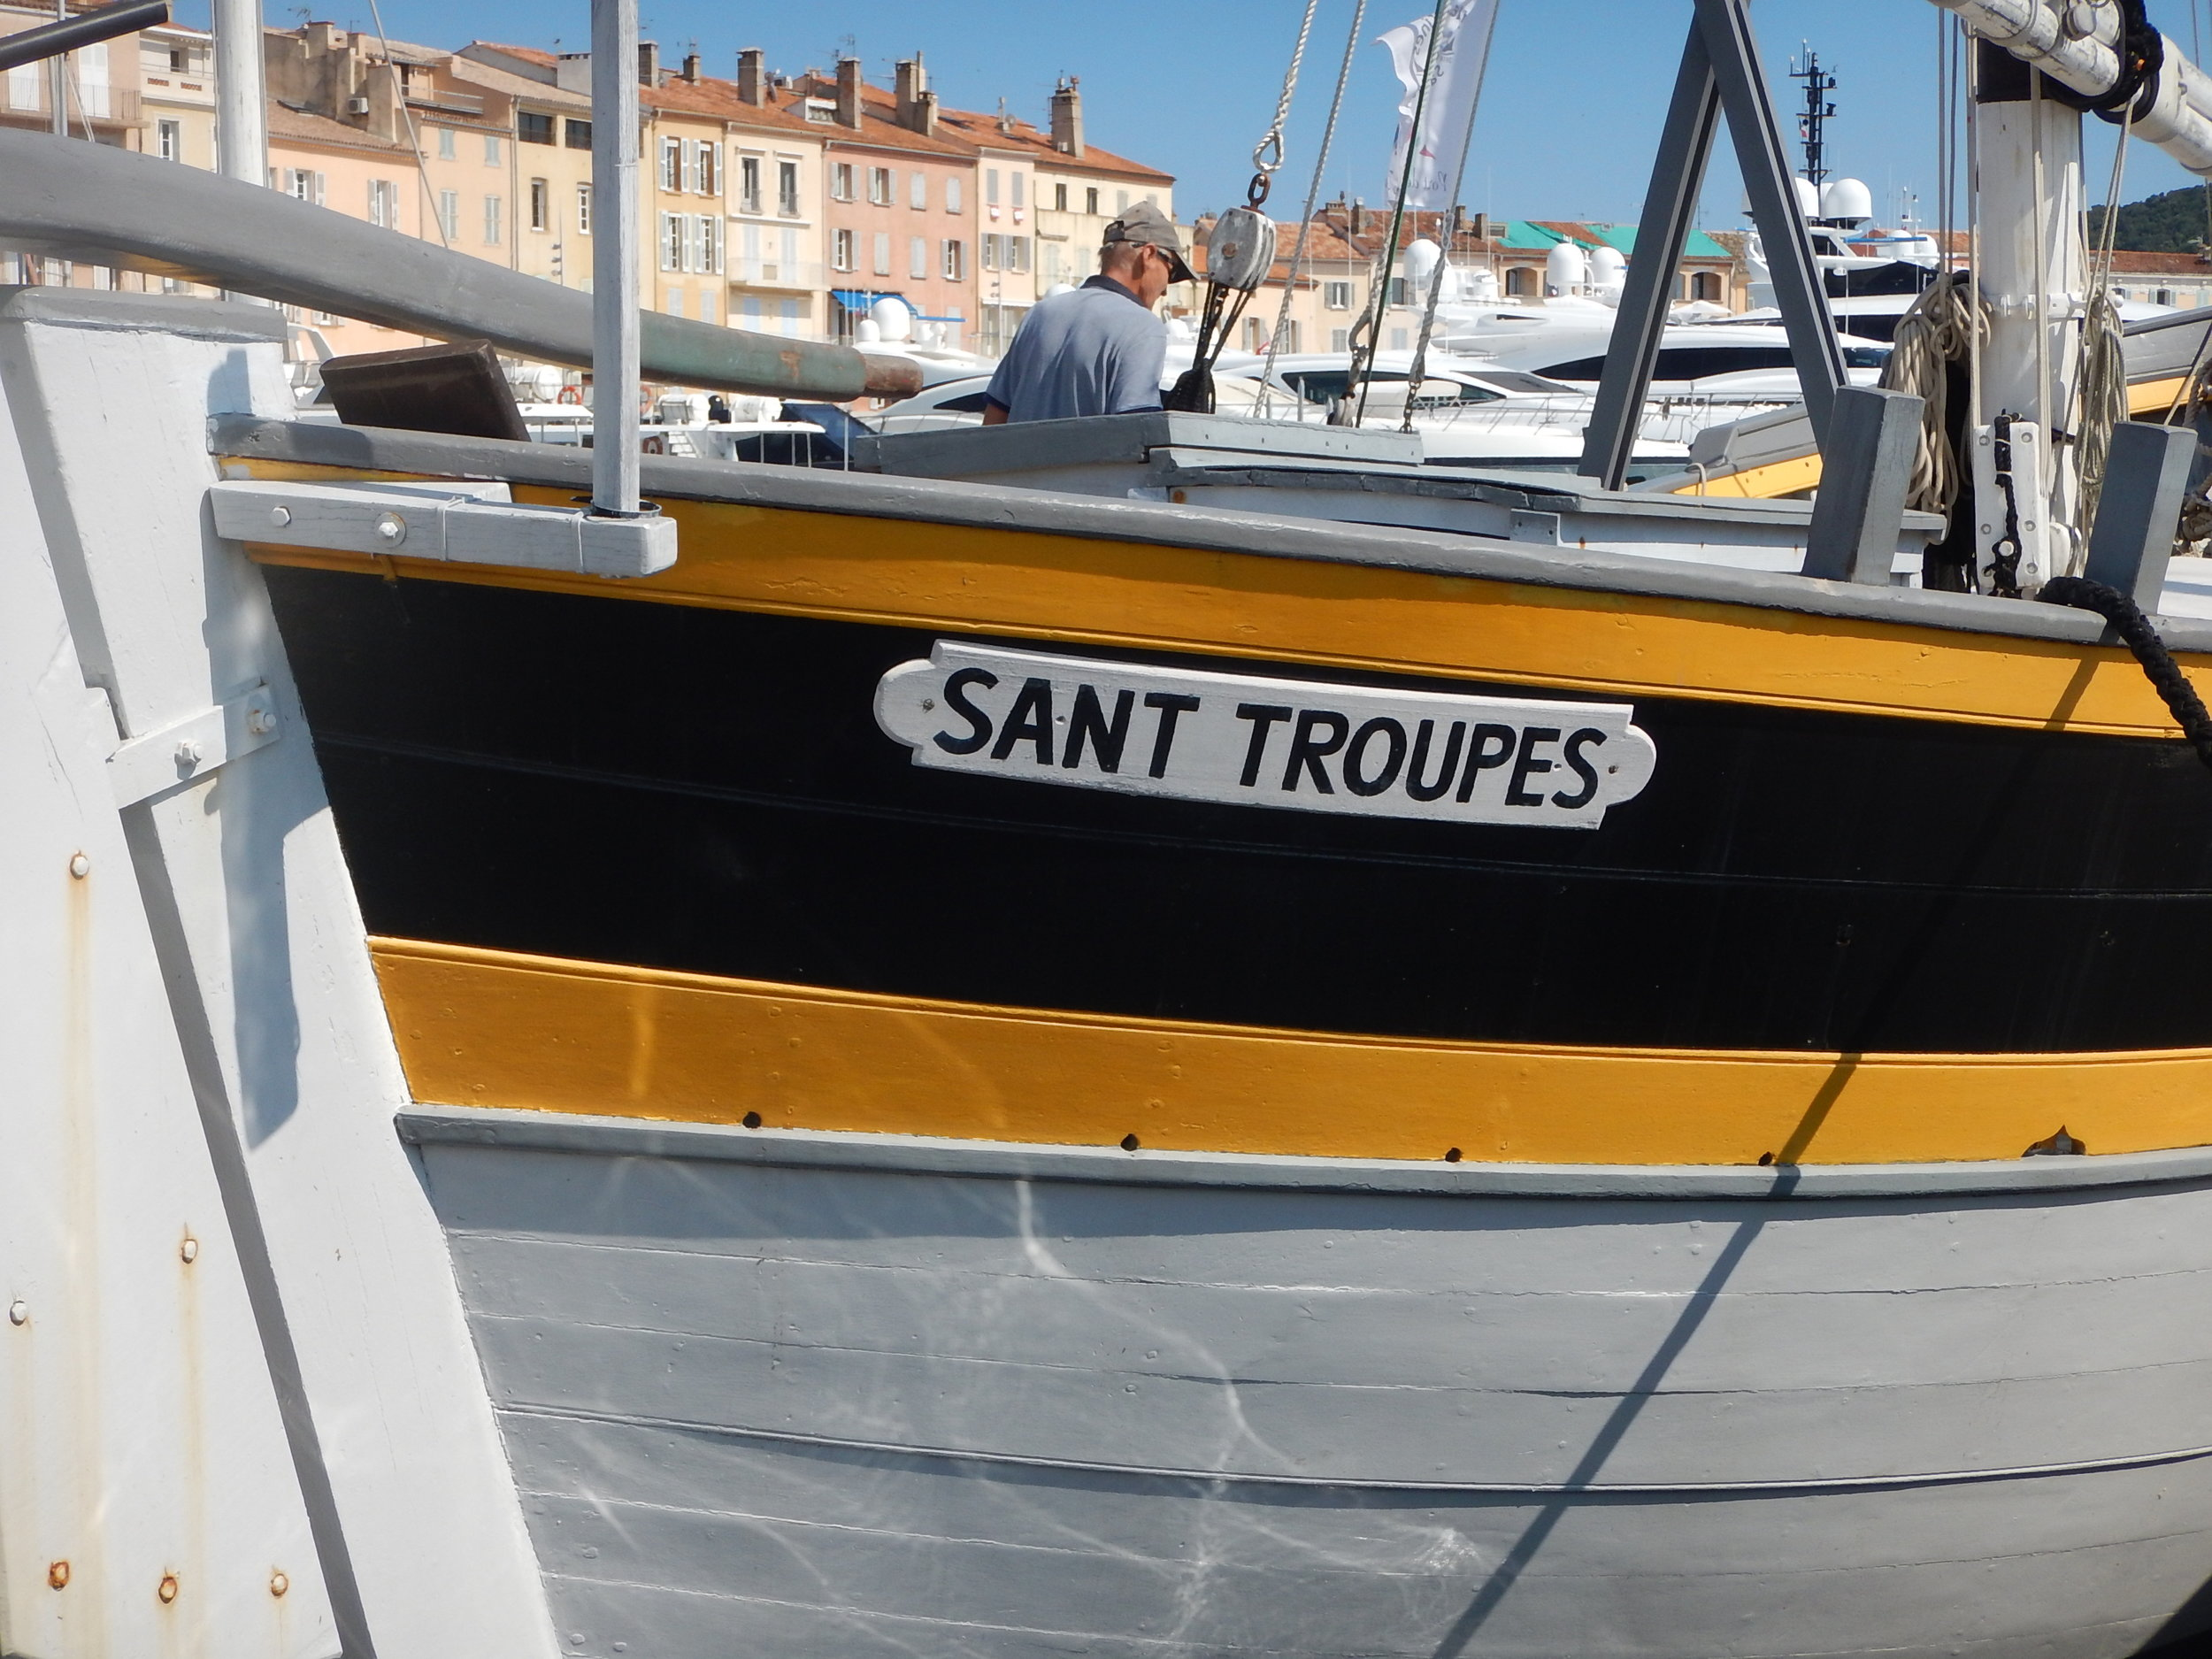 How fabulous is this. A Sant Troupes boat!!